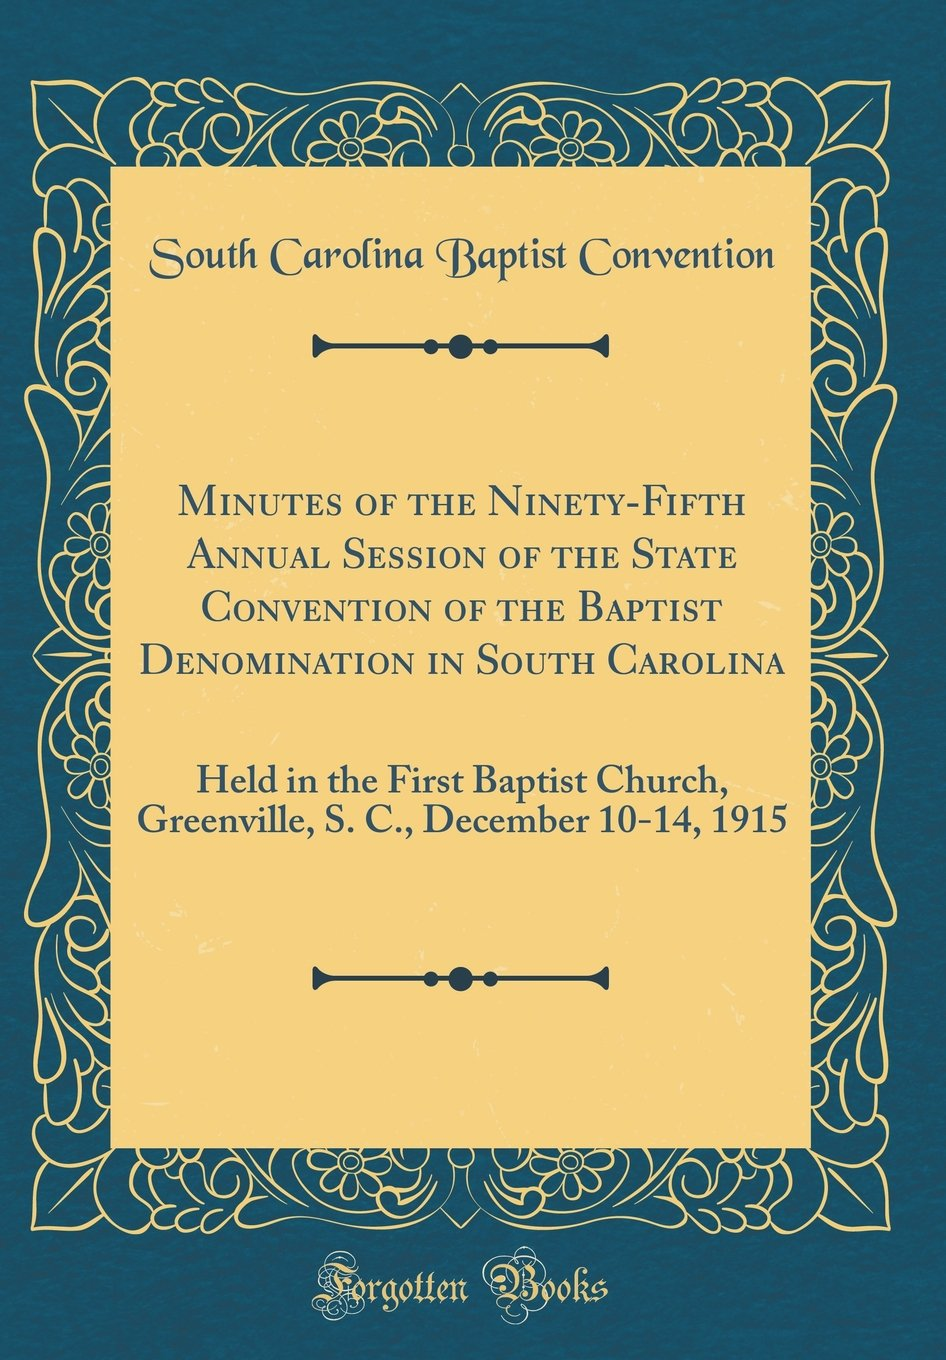 Minutes of the Ninety-Fifth Annual Session of the State Convention of the Baptist Denomination in South Carolina: Held in the First Baptist Church, ... S. C., December 10-14, 1915 (Classic Reprint) PDF